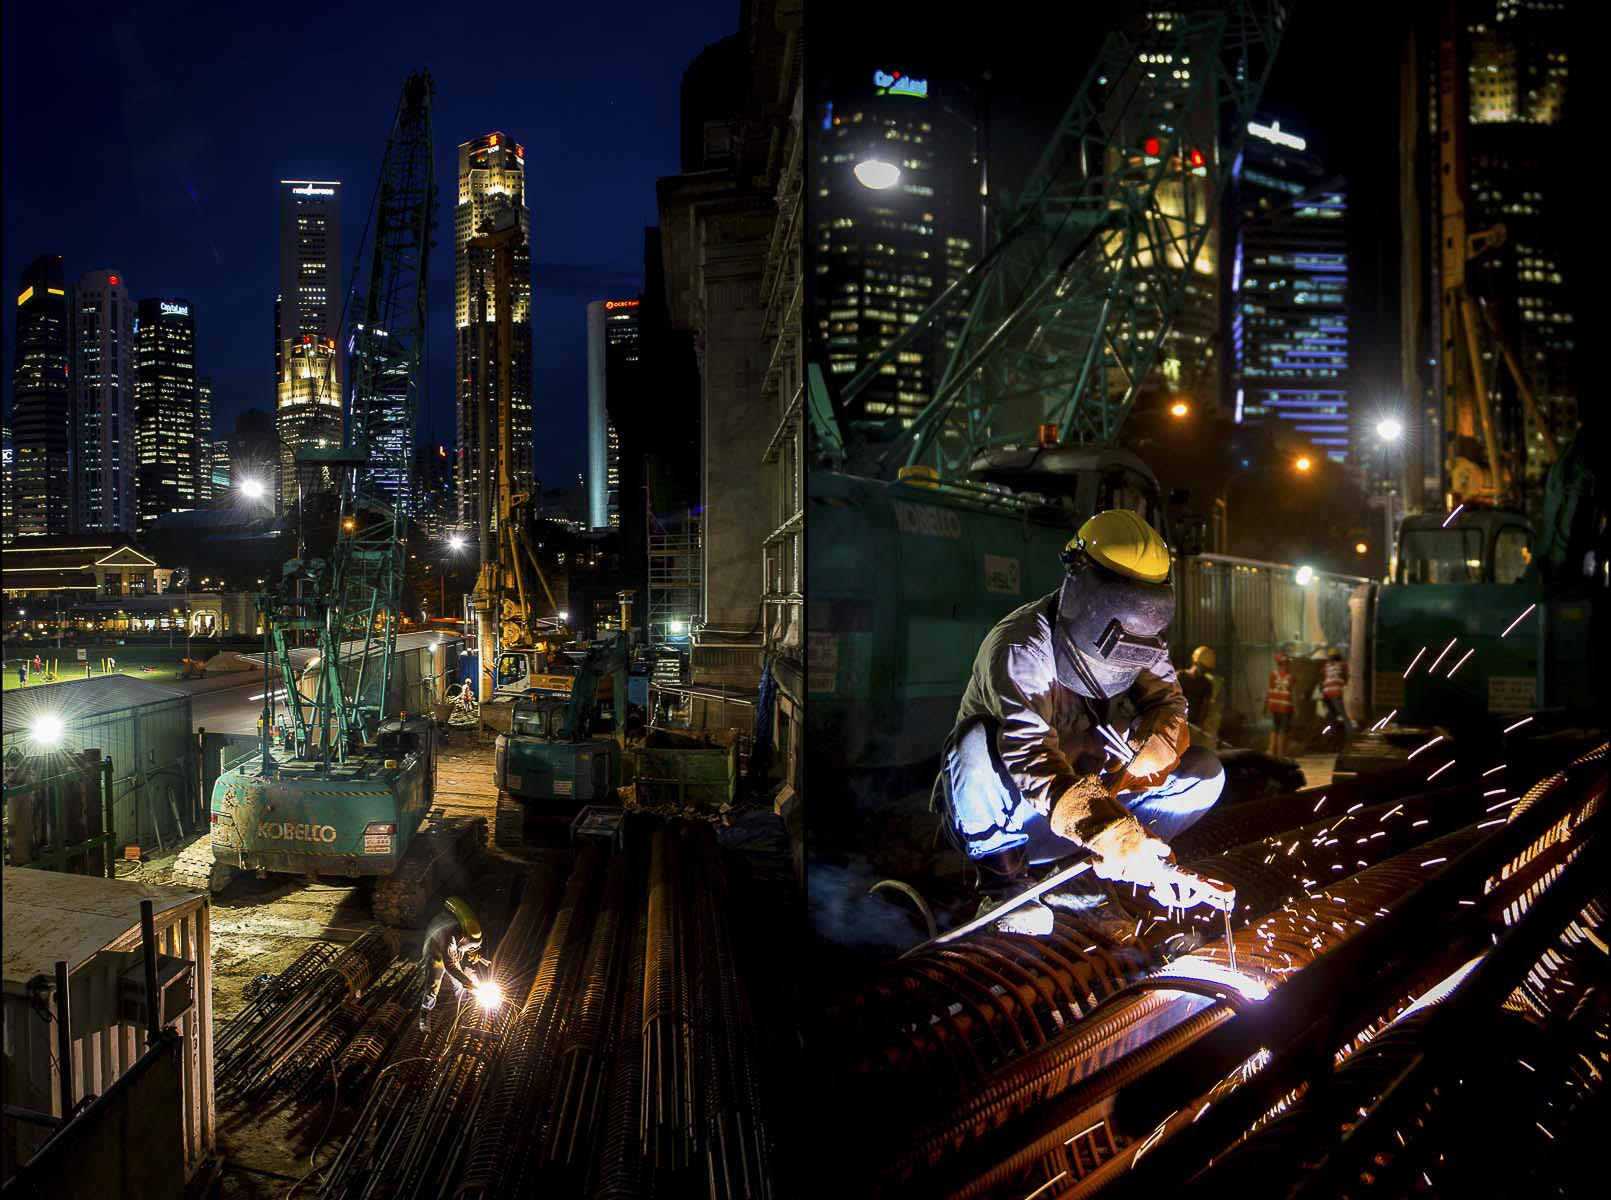 Industrial Photography, Construction, City Skyline